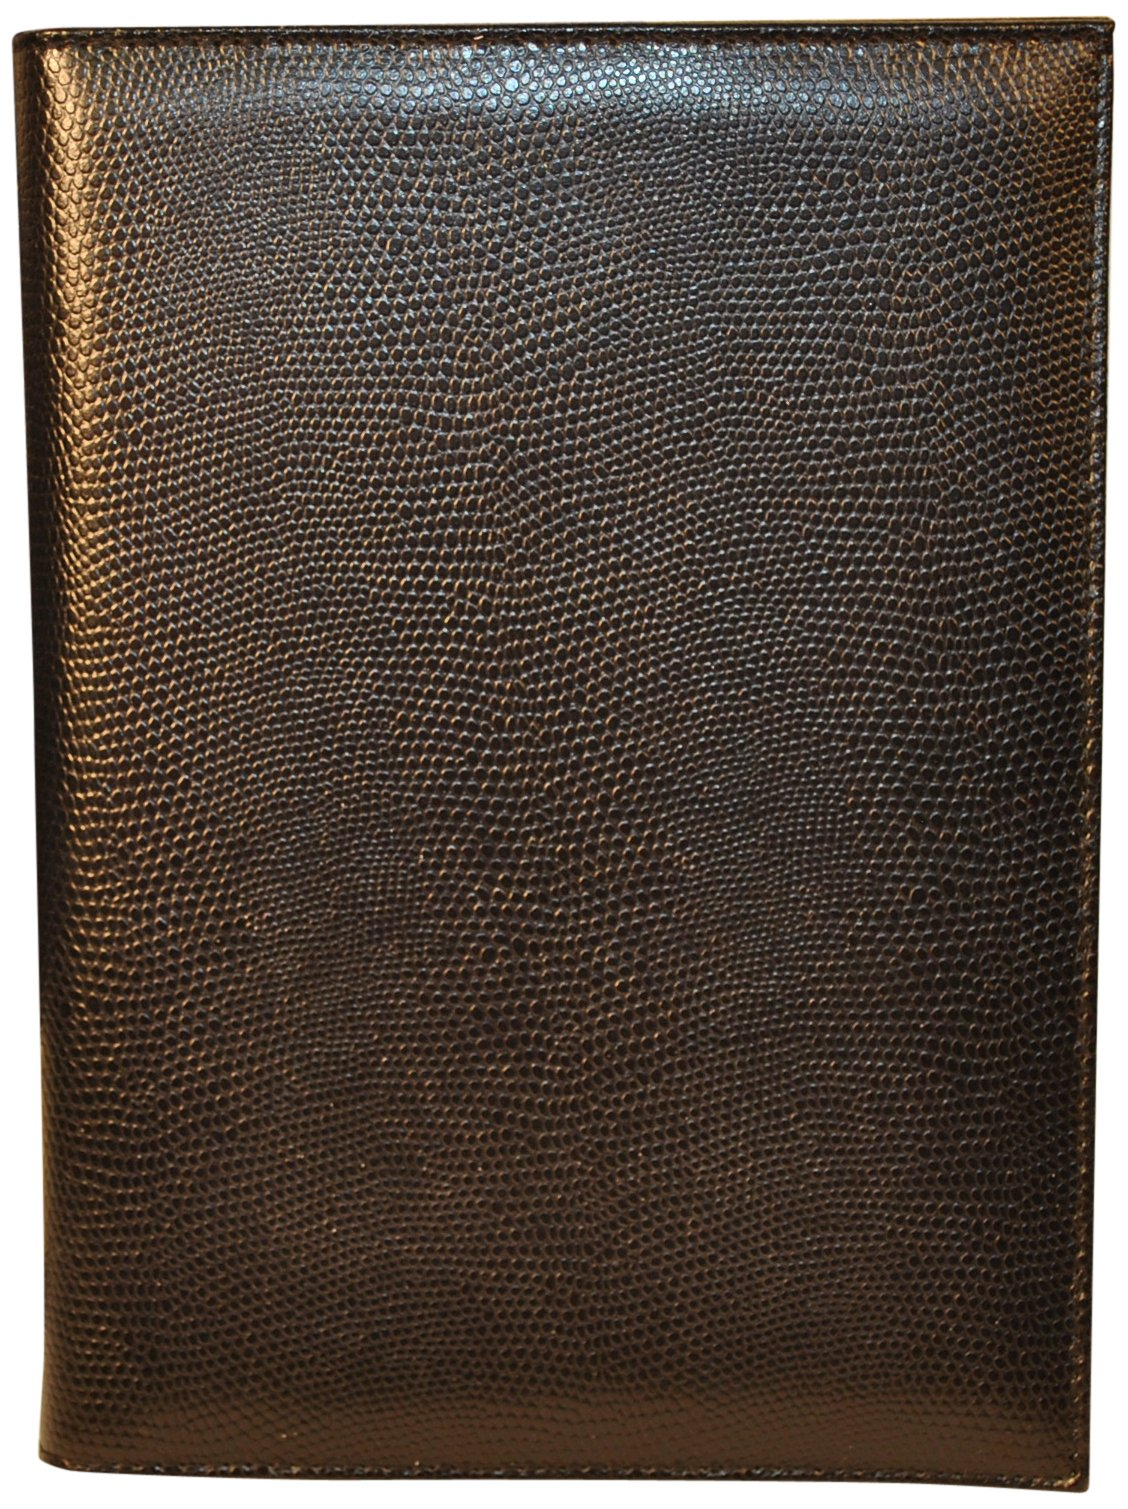 Budd Leather Lizard Calf Pad Cover, Black